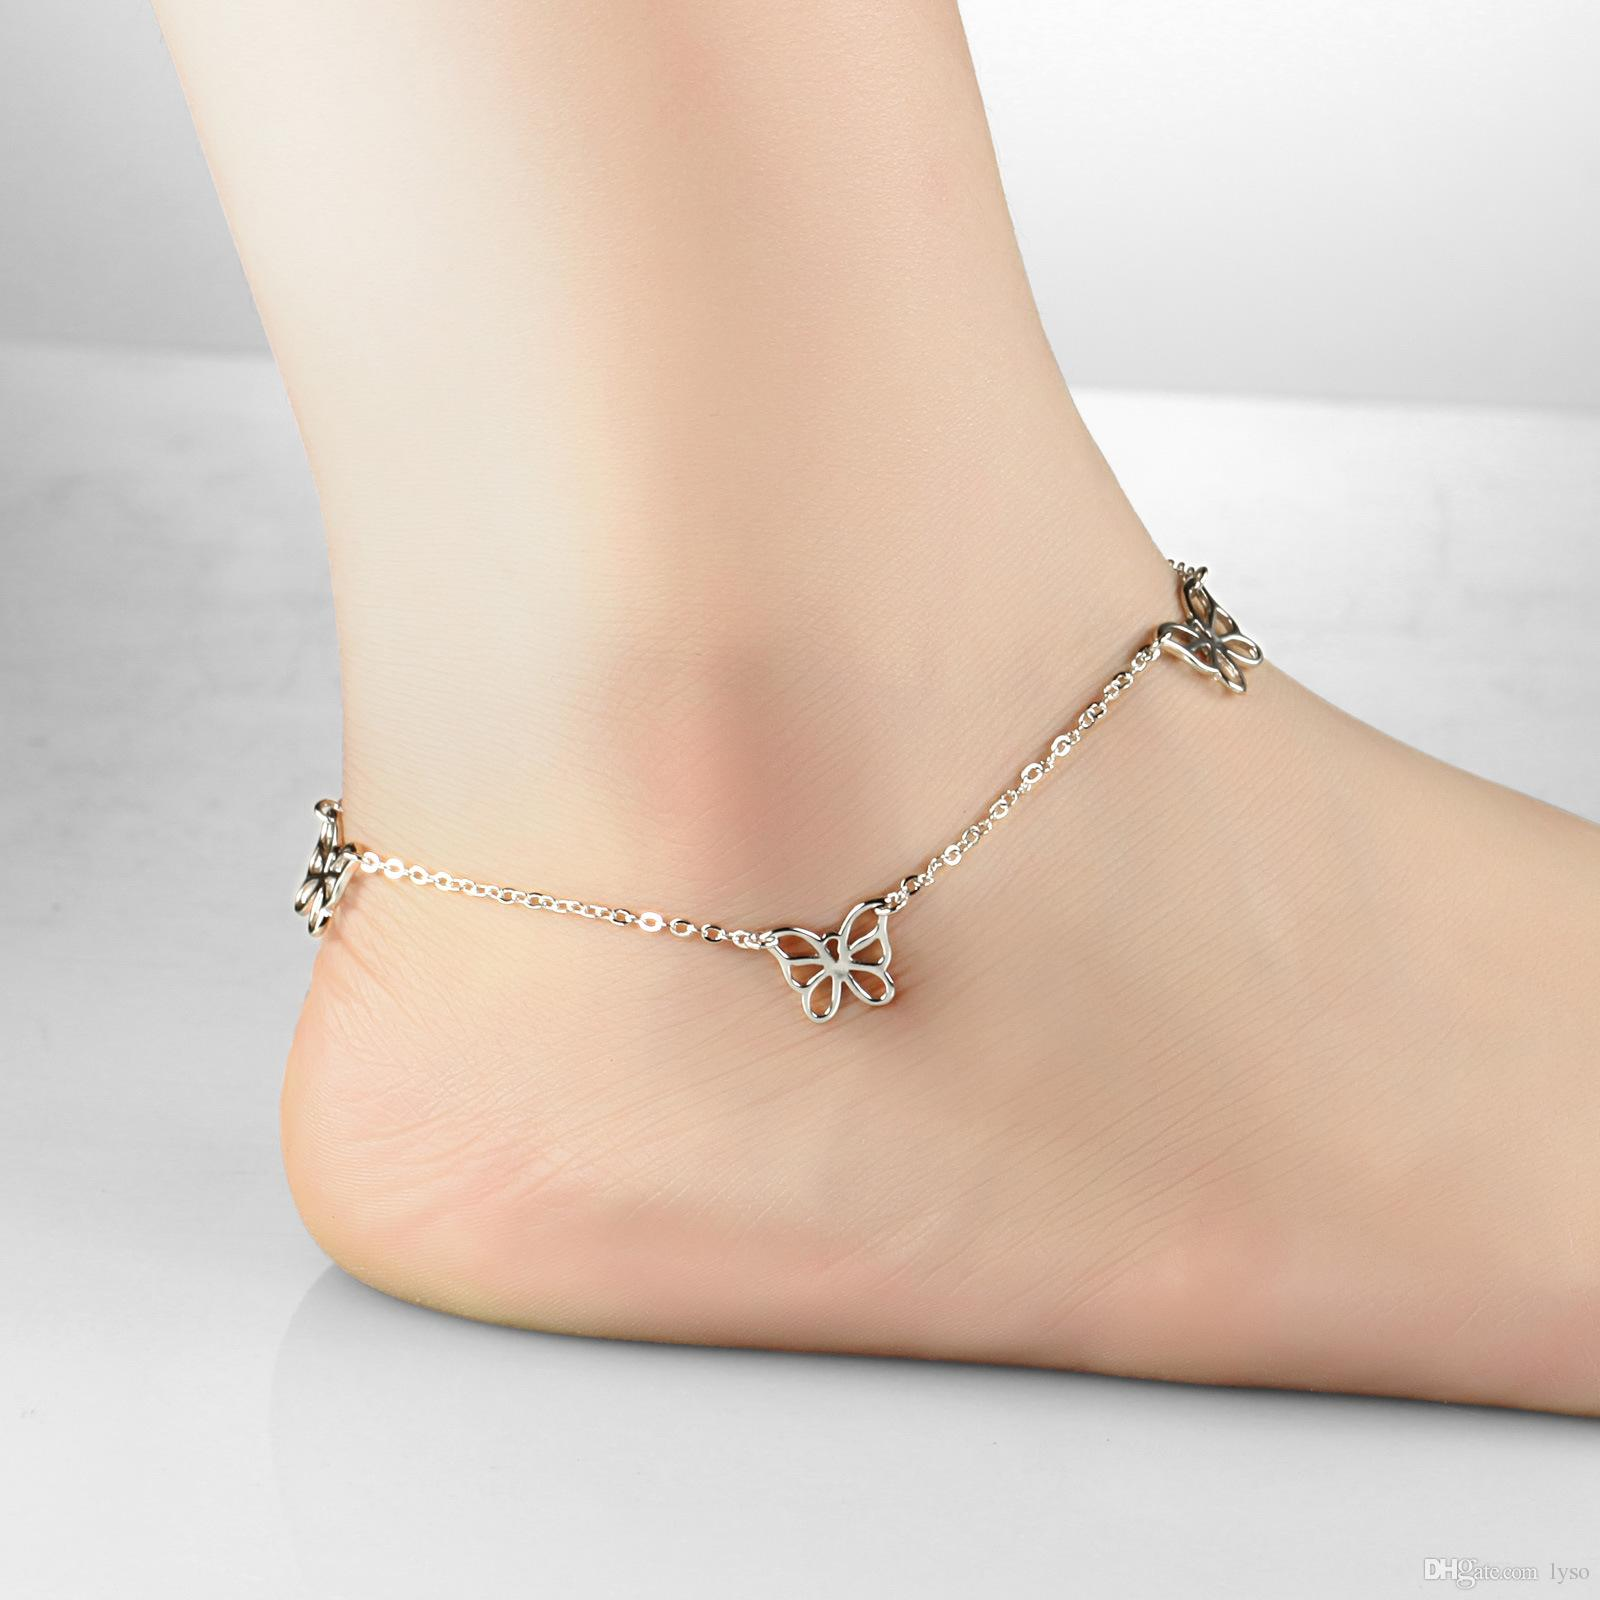 jewelry chain rhinestone foot wedding beach with ring barefoot sandal toe pin crystal anklet